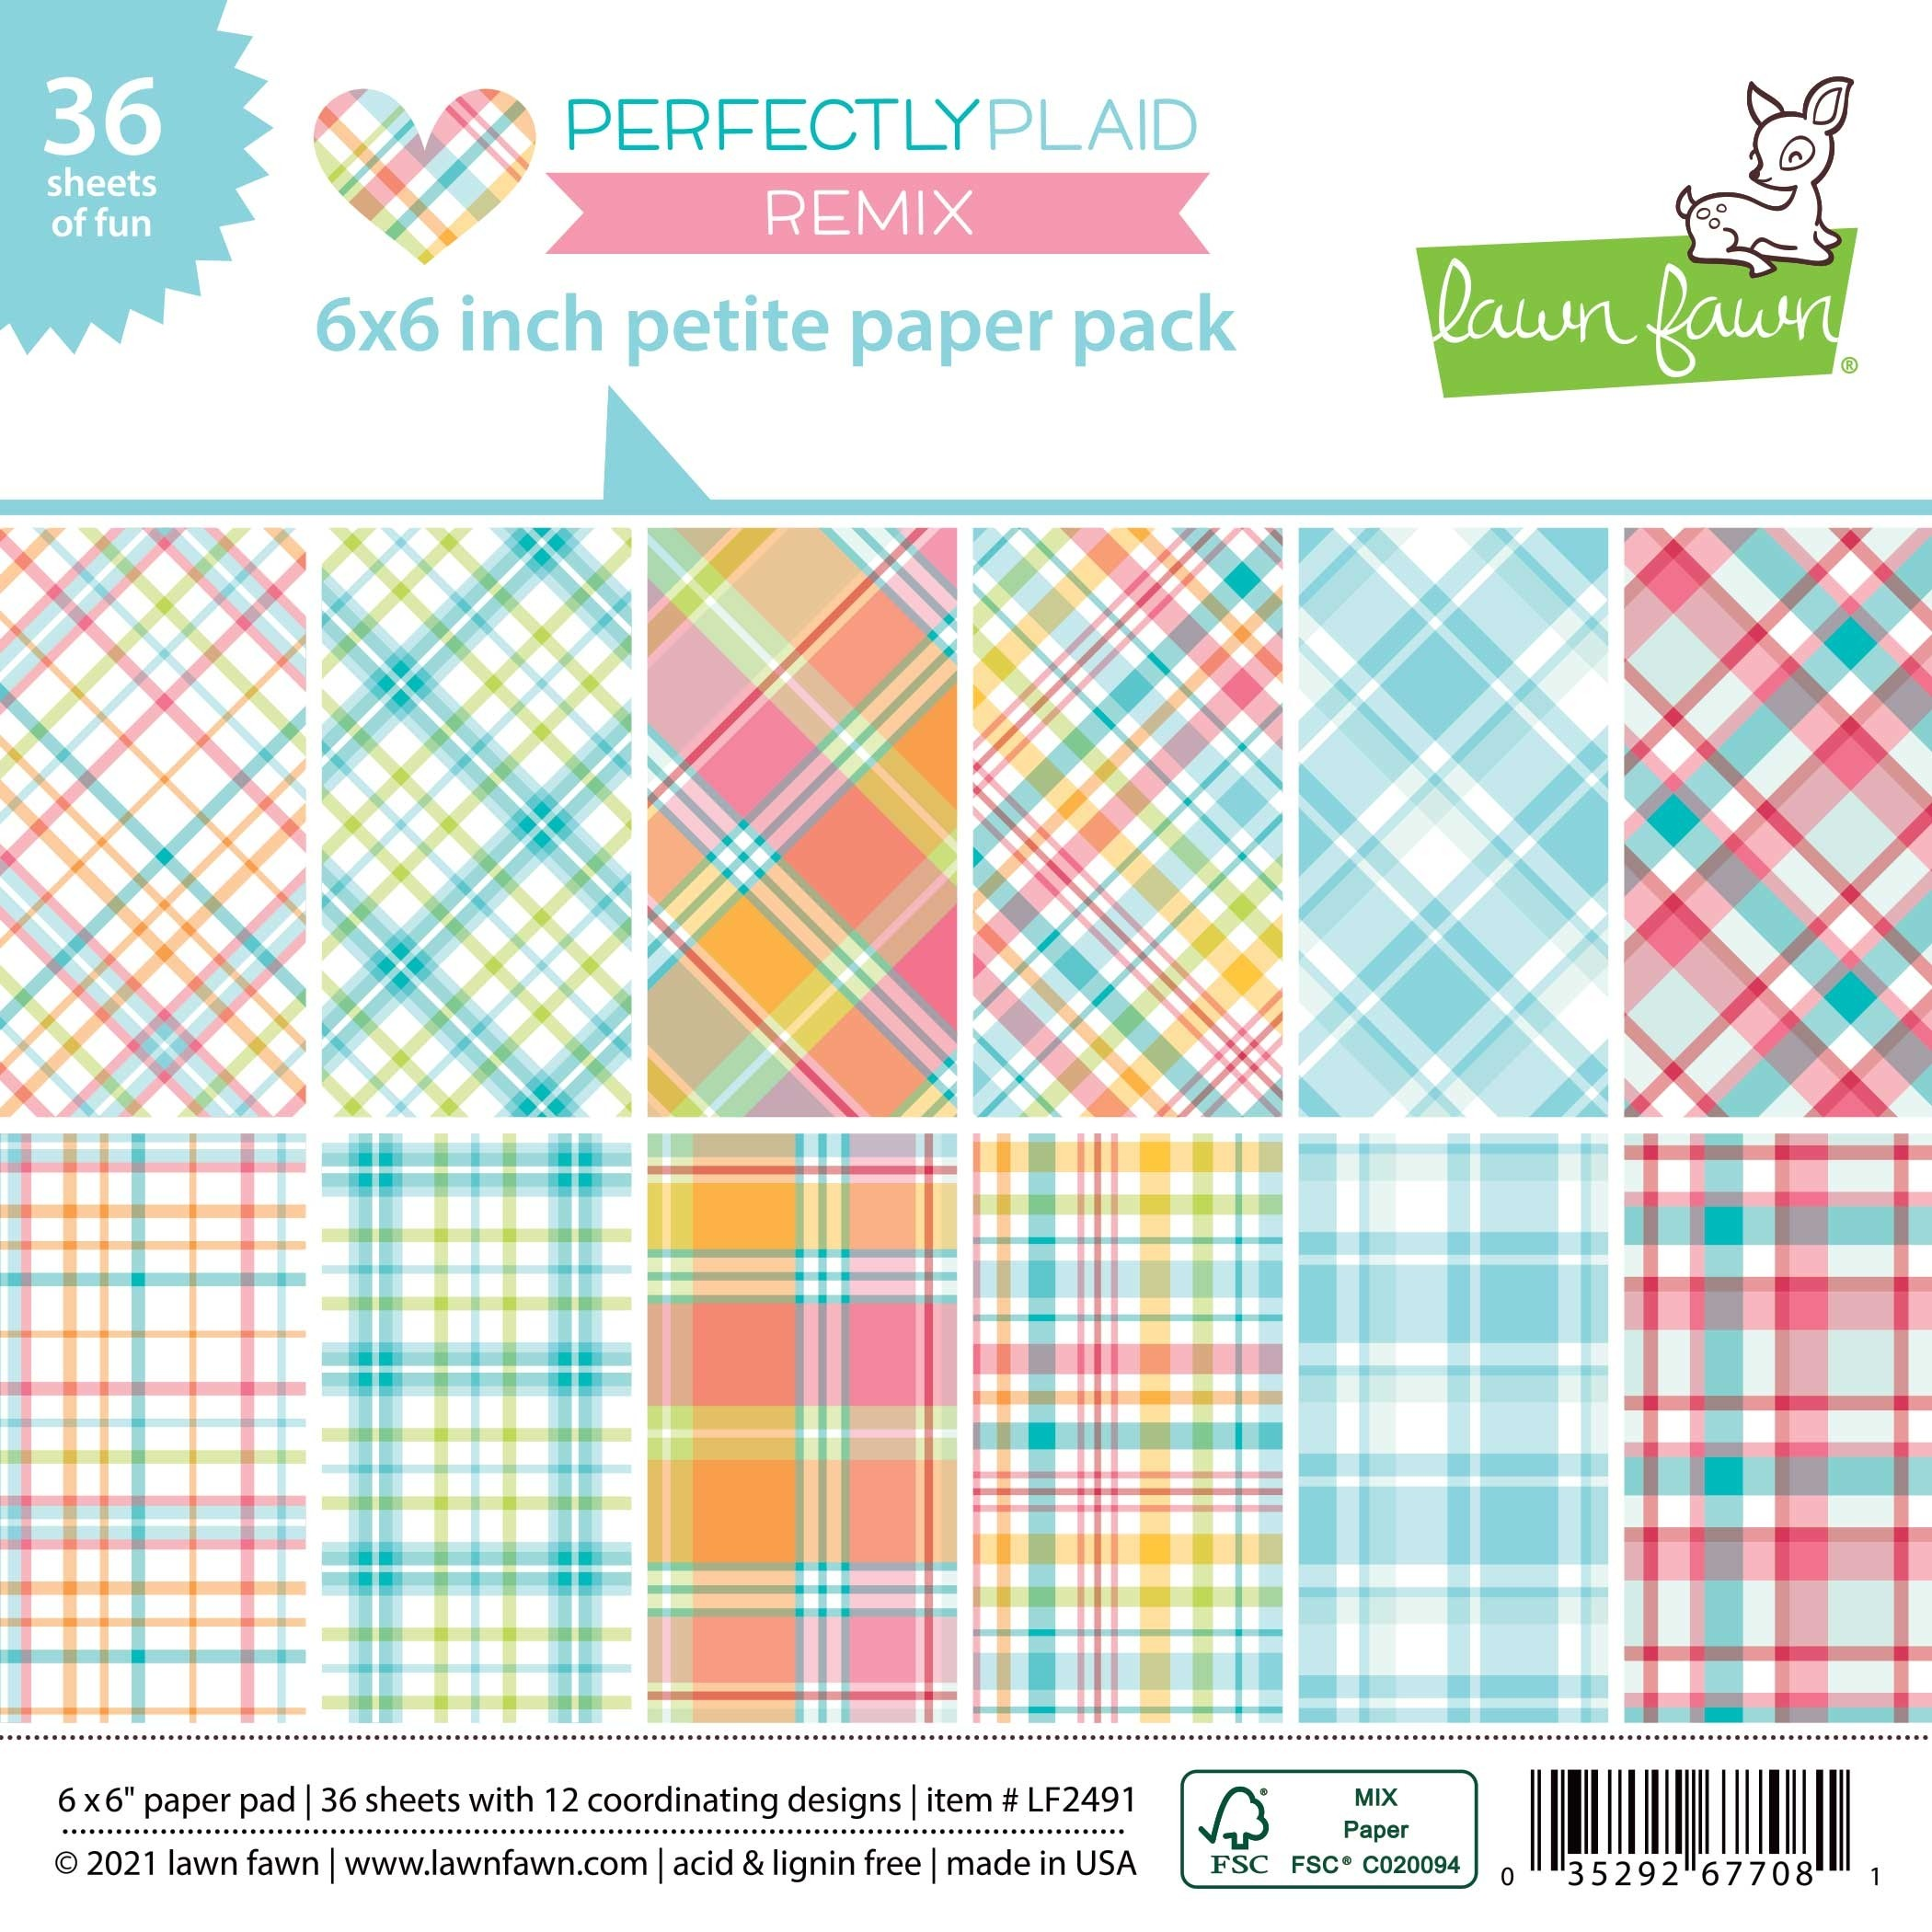 Lawn Fawn Perfectly Plaid Remix Petite Paper Pack